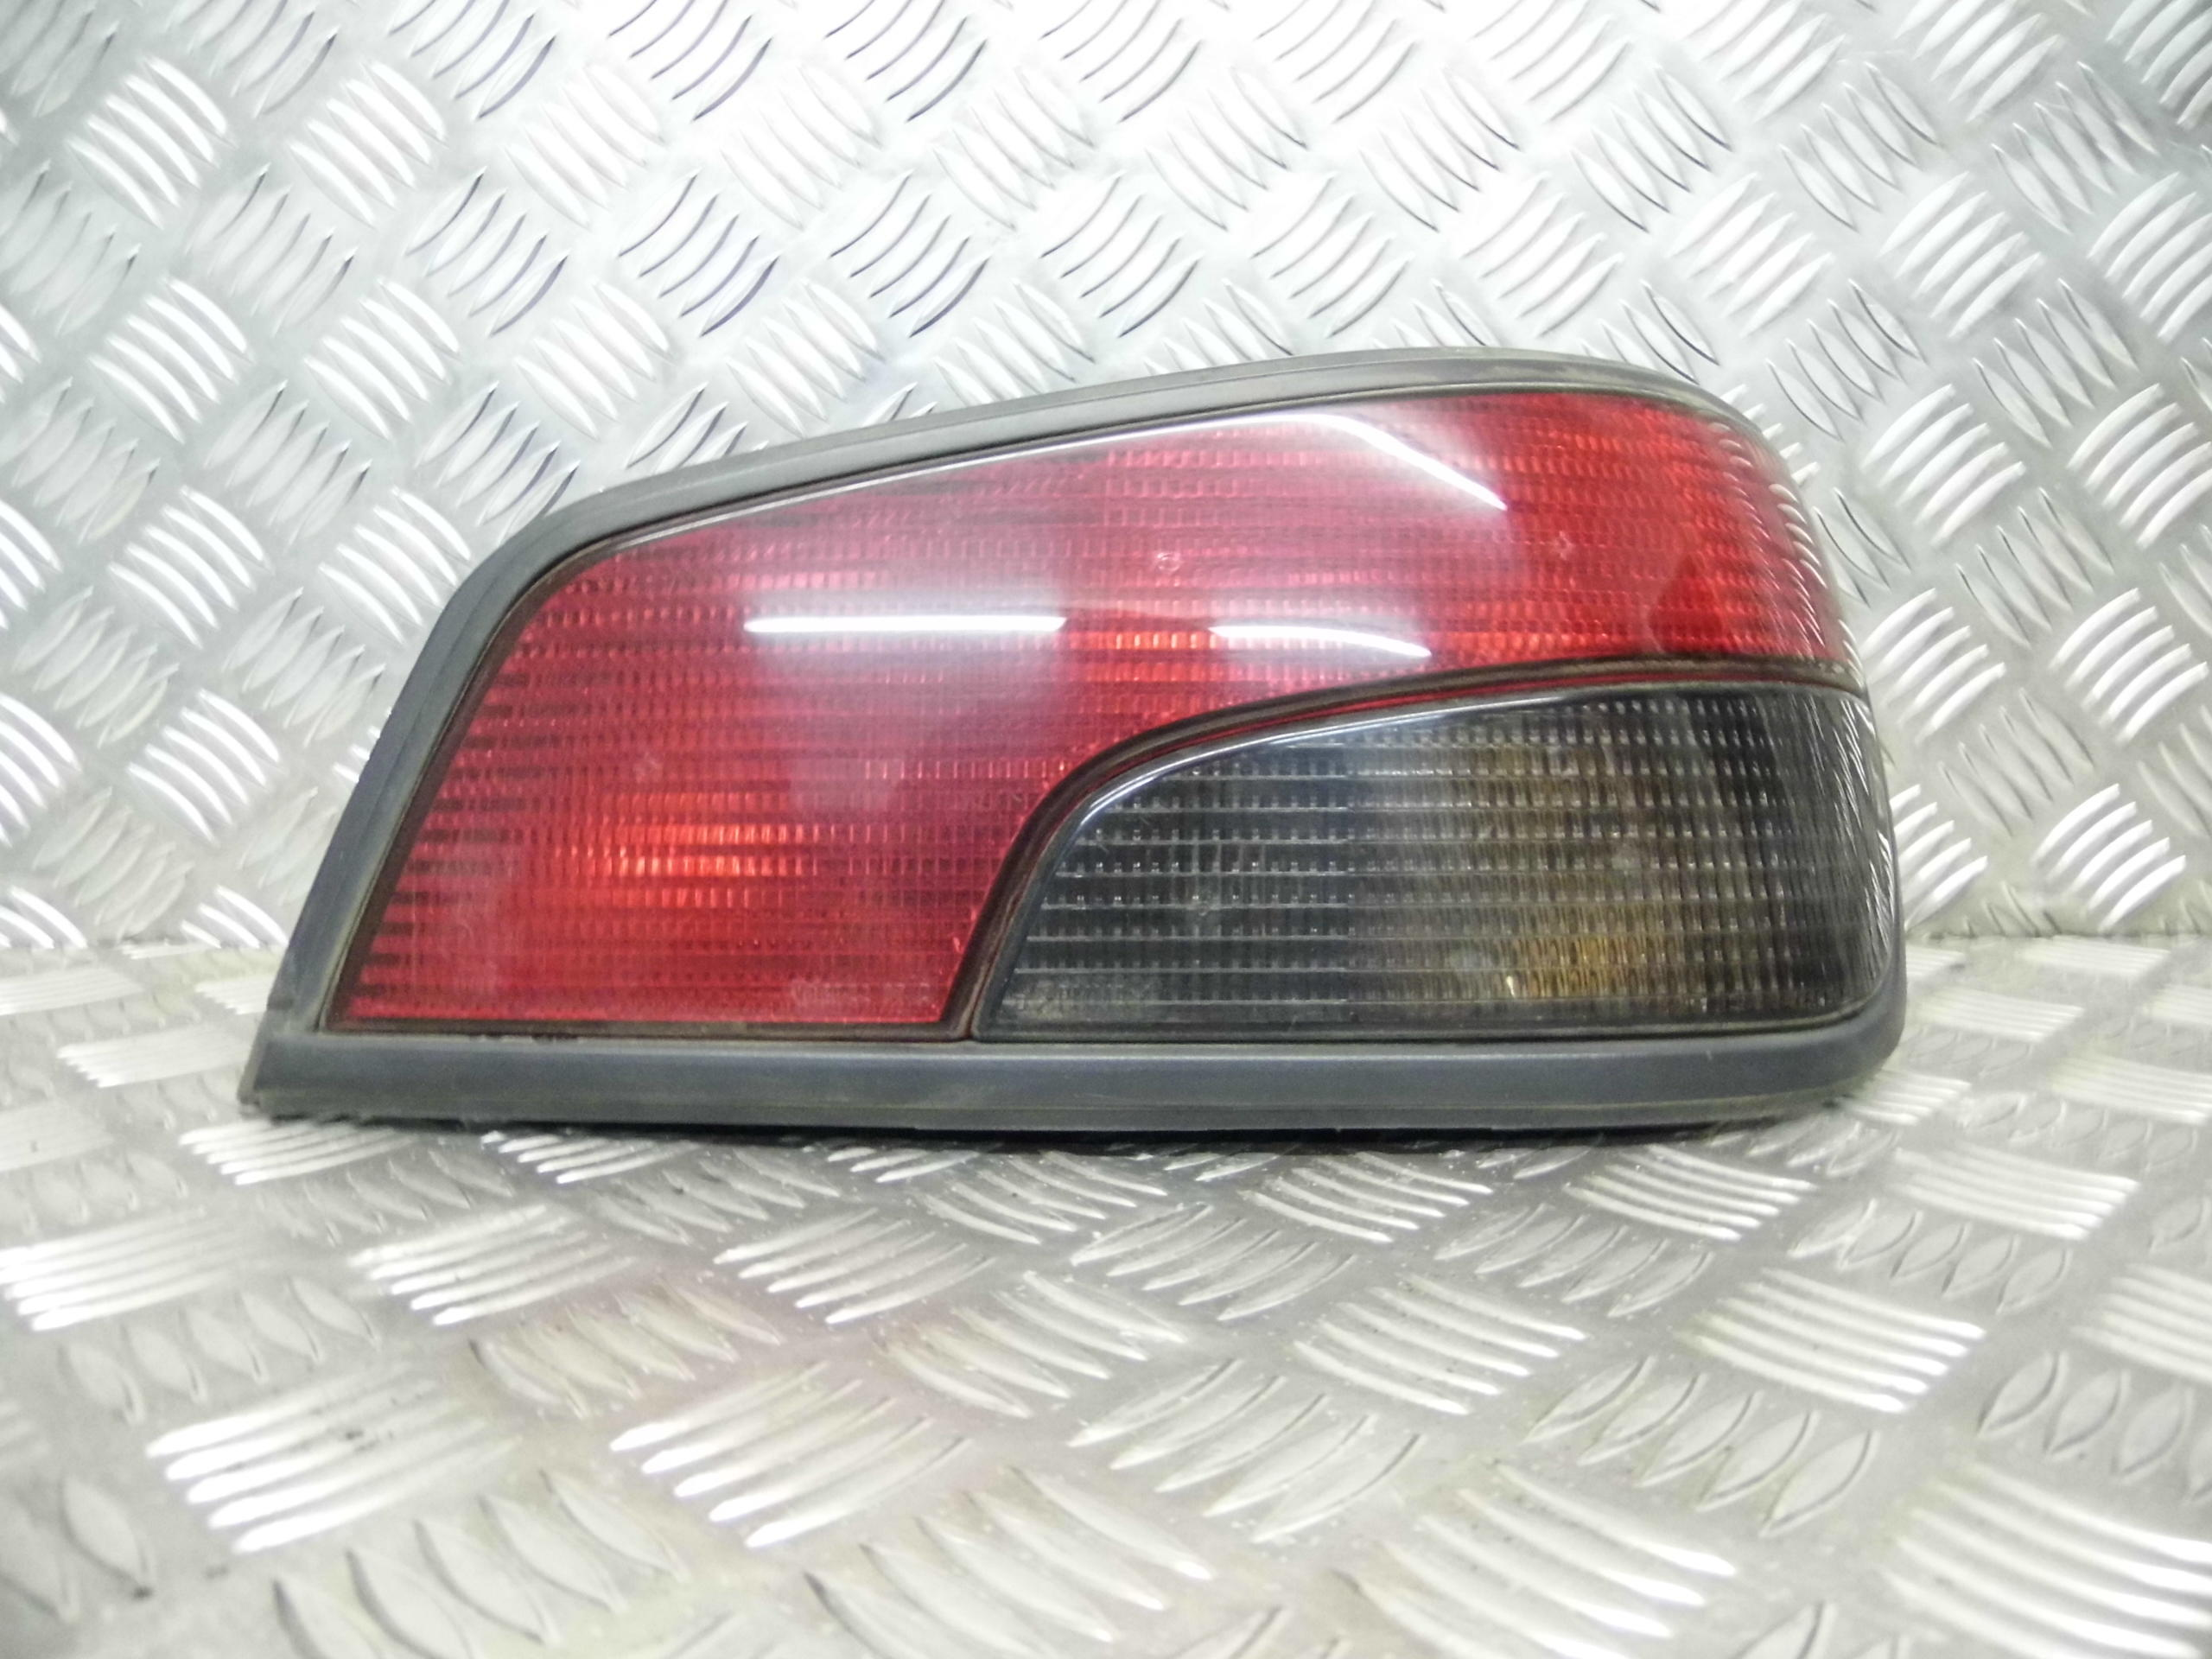 Rear Lights Peugeot 605 Fuse Box 1996 306 Drivers Side Light Front View